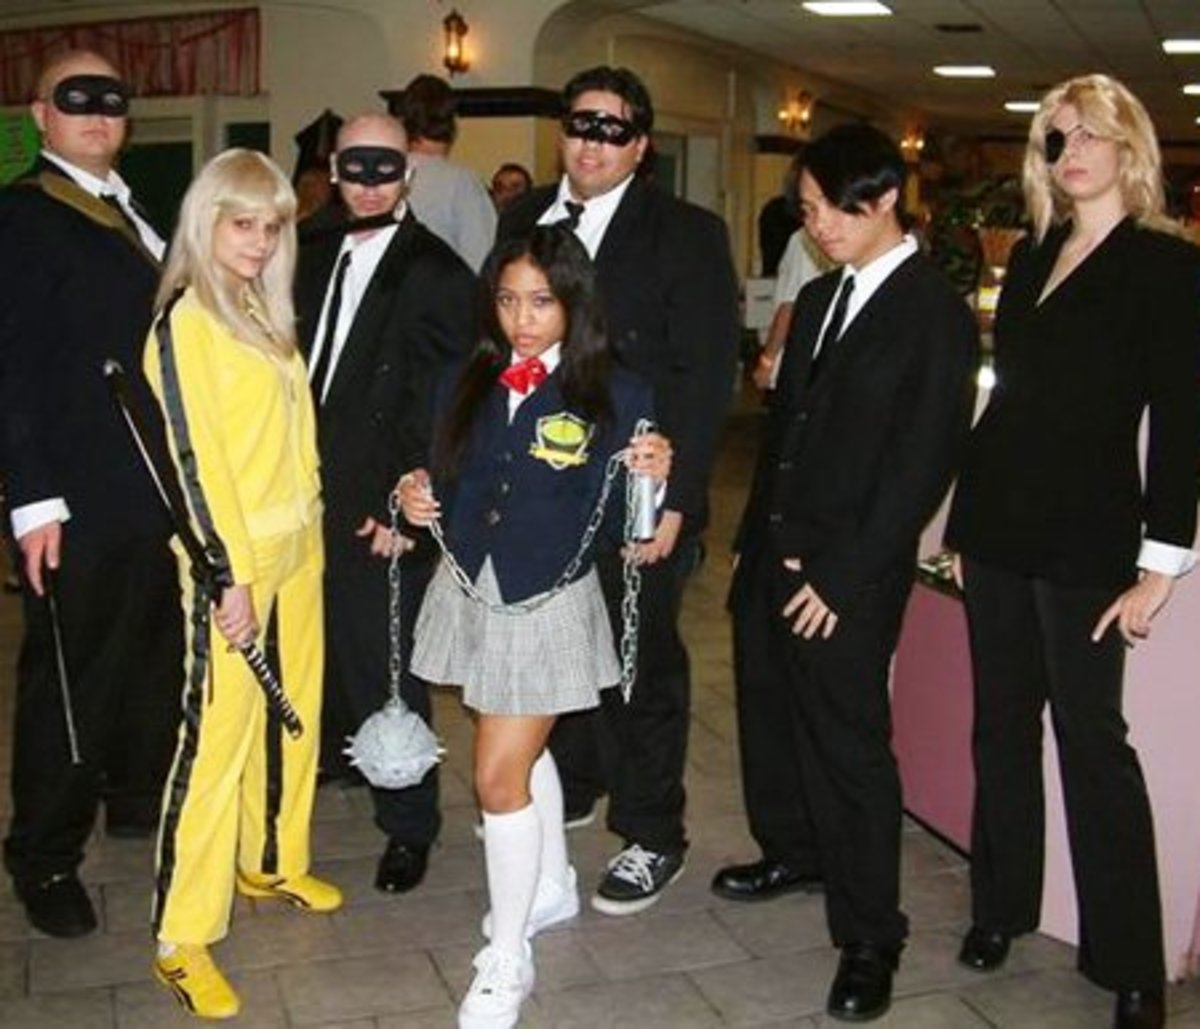 Kill Bill Group Costume | 101 Halloween Costume Ideas for Women